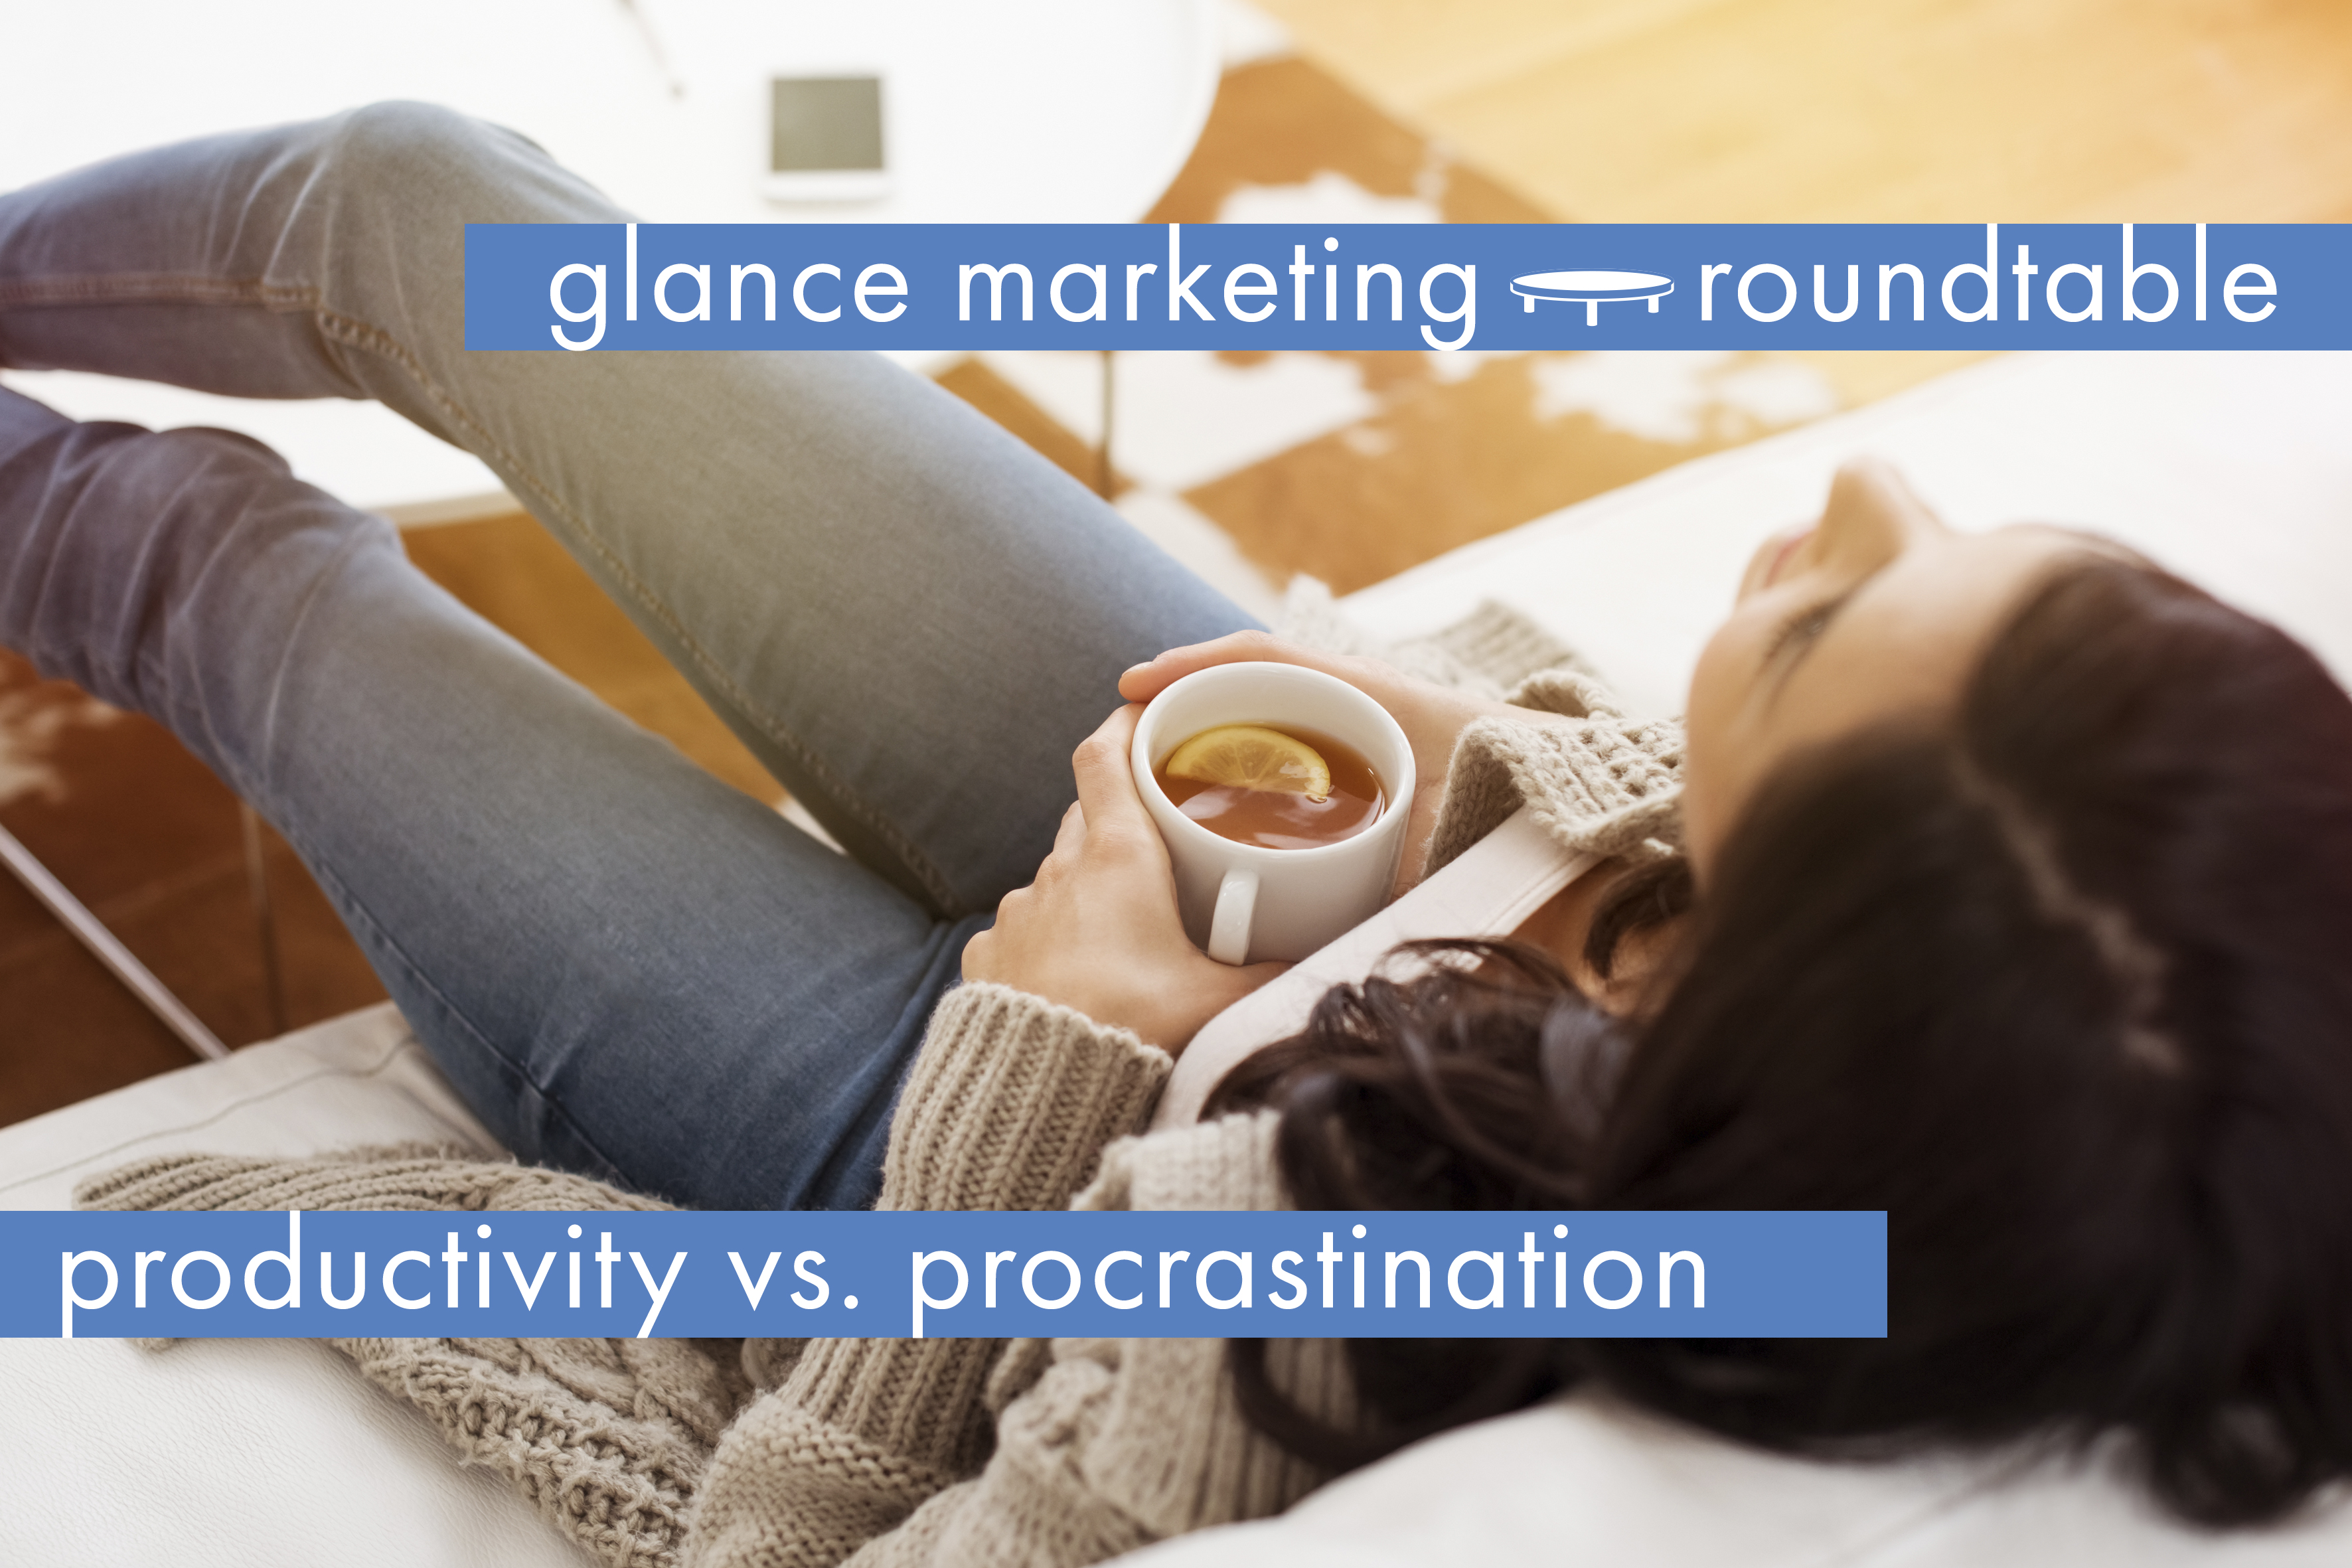 Productivity vs. procrastination - Glance Roundtable